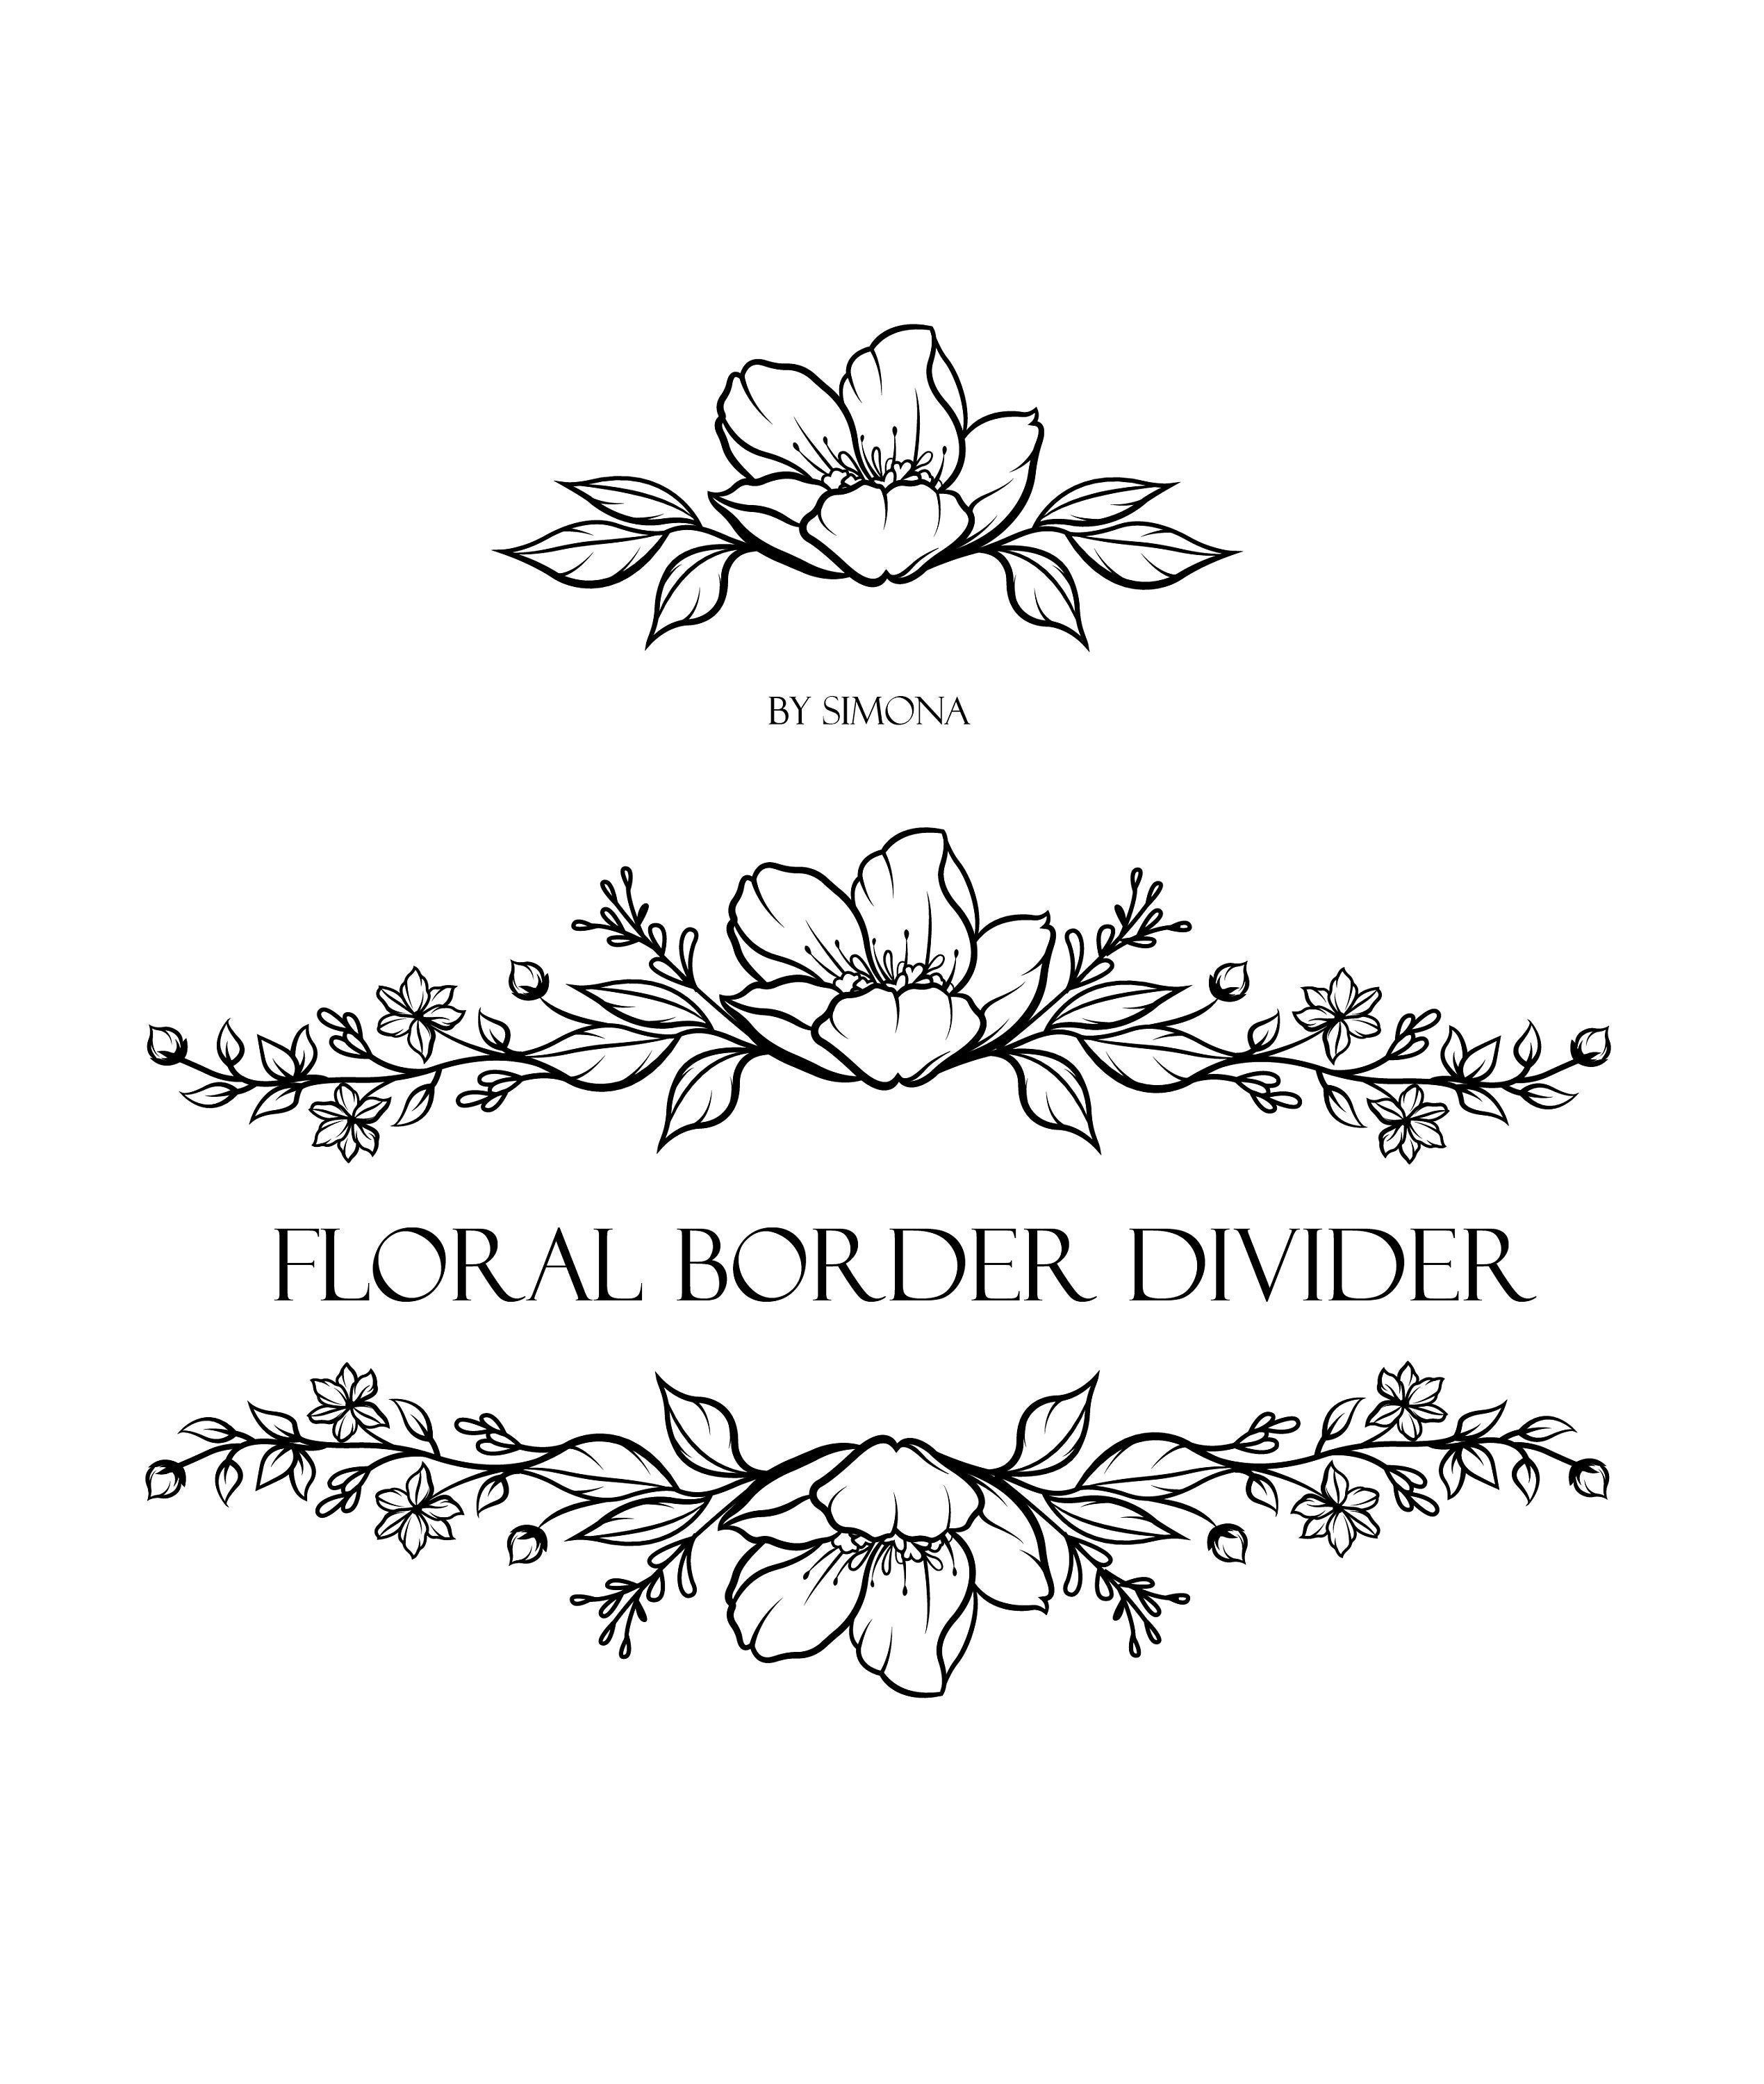 Flowers Floral Border Divider Hand Drawn Logo Etsy In 2020 Floral Border Flower Drawing Floral Doodle